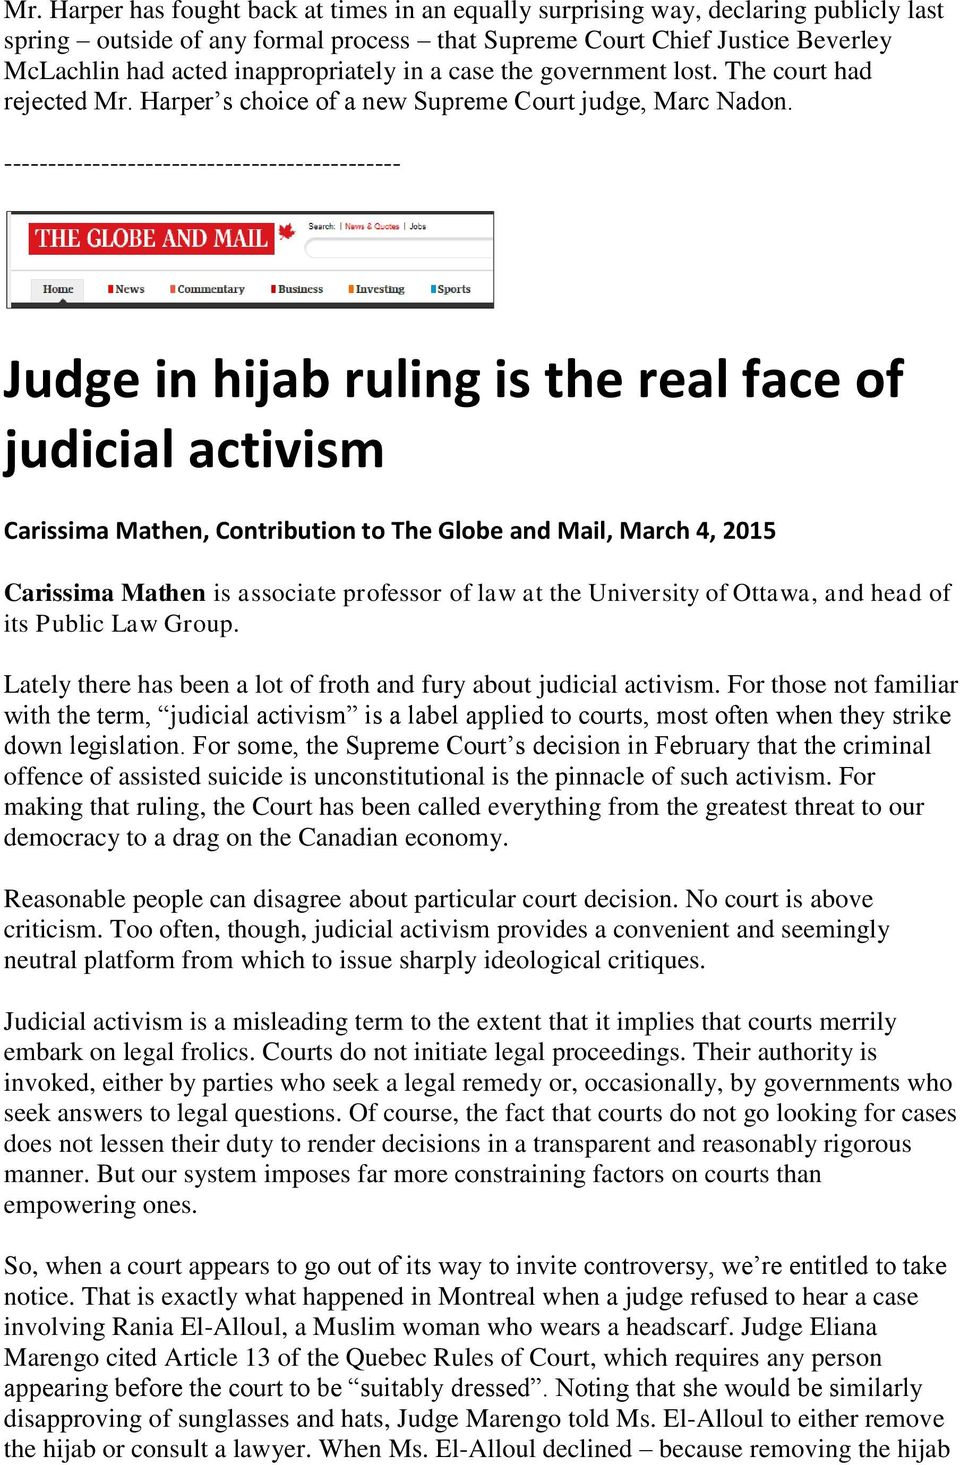 --------------------------------------------- Judge in hijab ruling is the real face of judicial activism Carissima Mathen, Contribution to The Globe and Mail, March 4, 2015 Carissima Mathen is